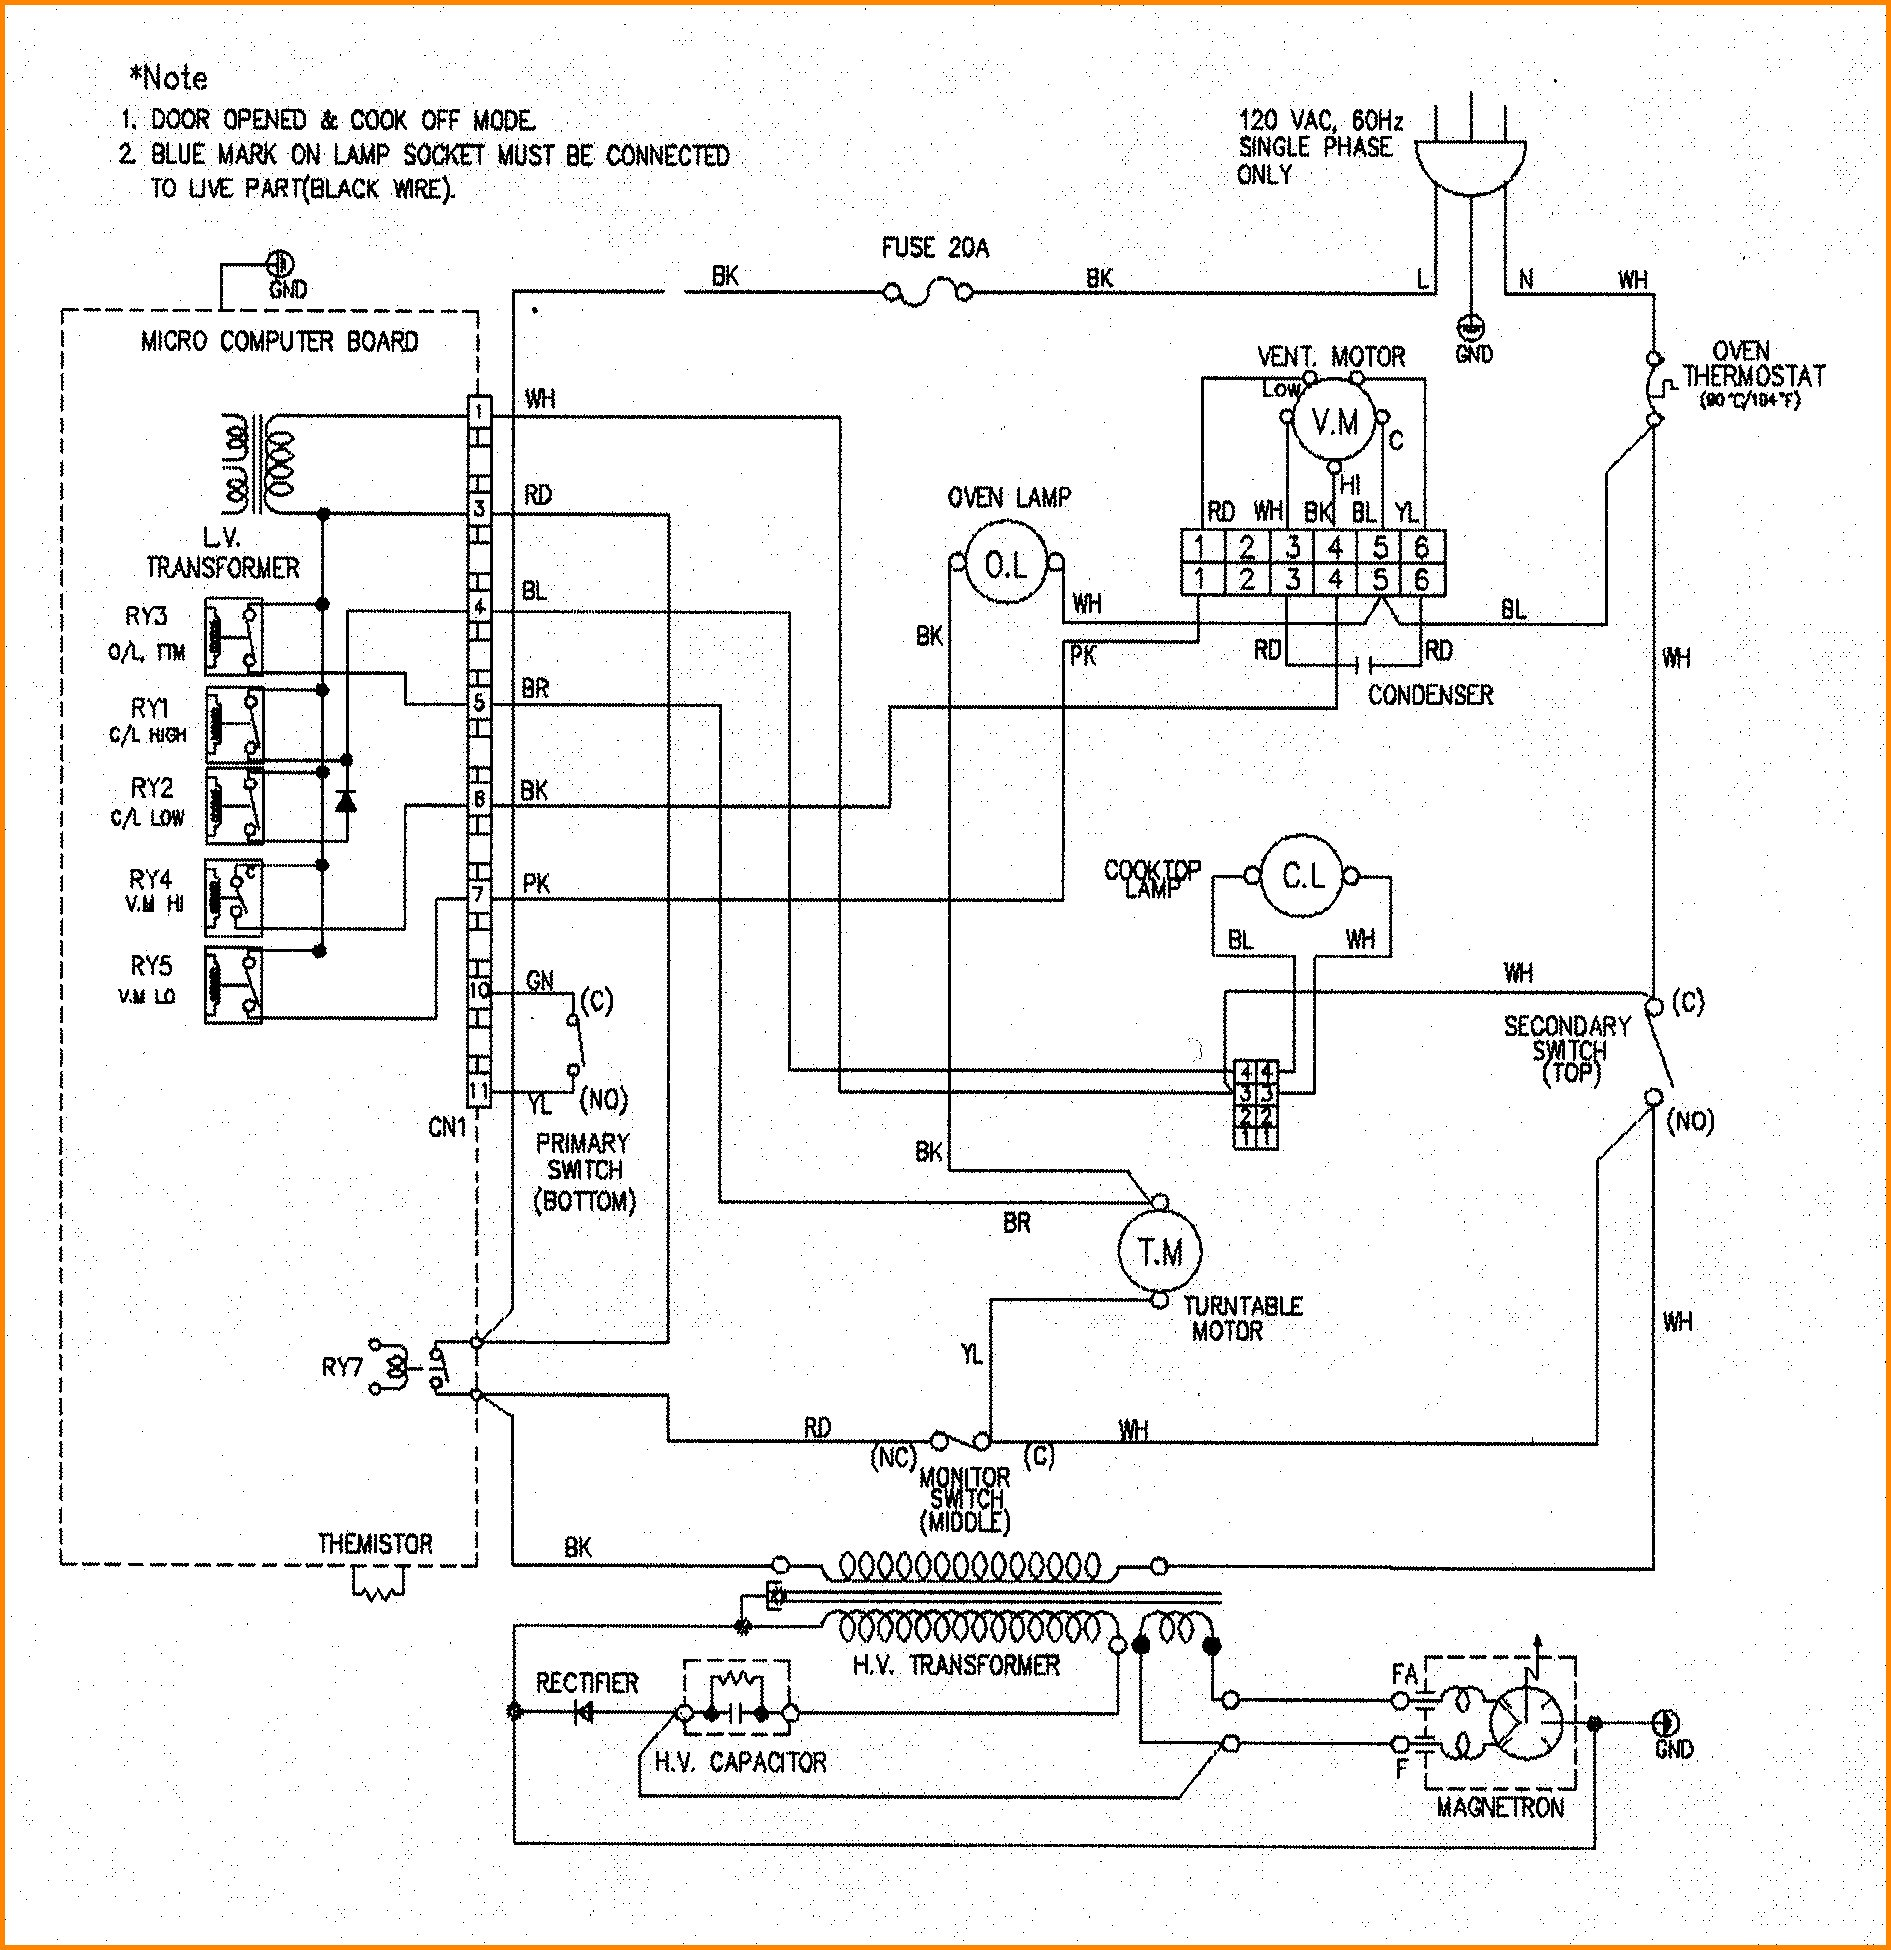 Powder Coat Oven Wiring Diagram Wiring Diagram For Oven Thermostat Free Wiring Diagram Rh Xwiaw Us I on Electrical Wiring Diagram Builder Free